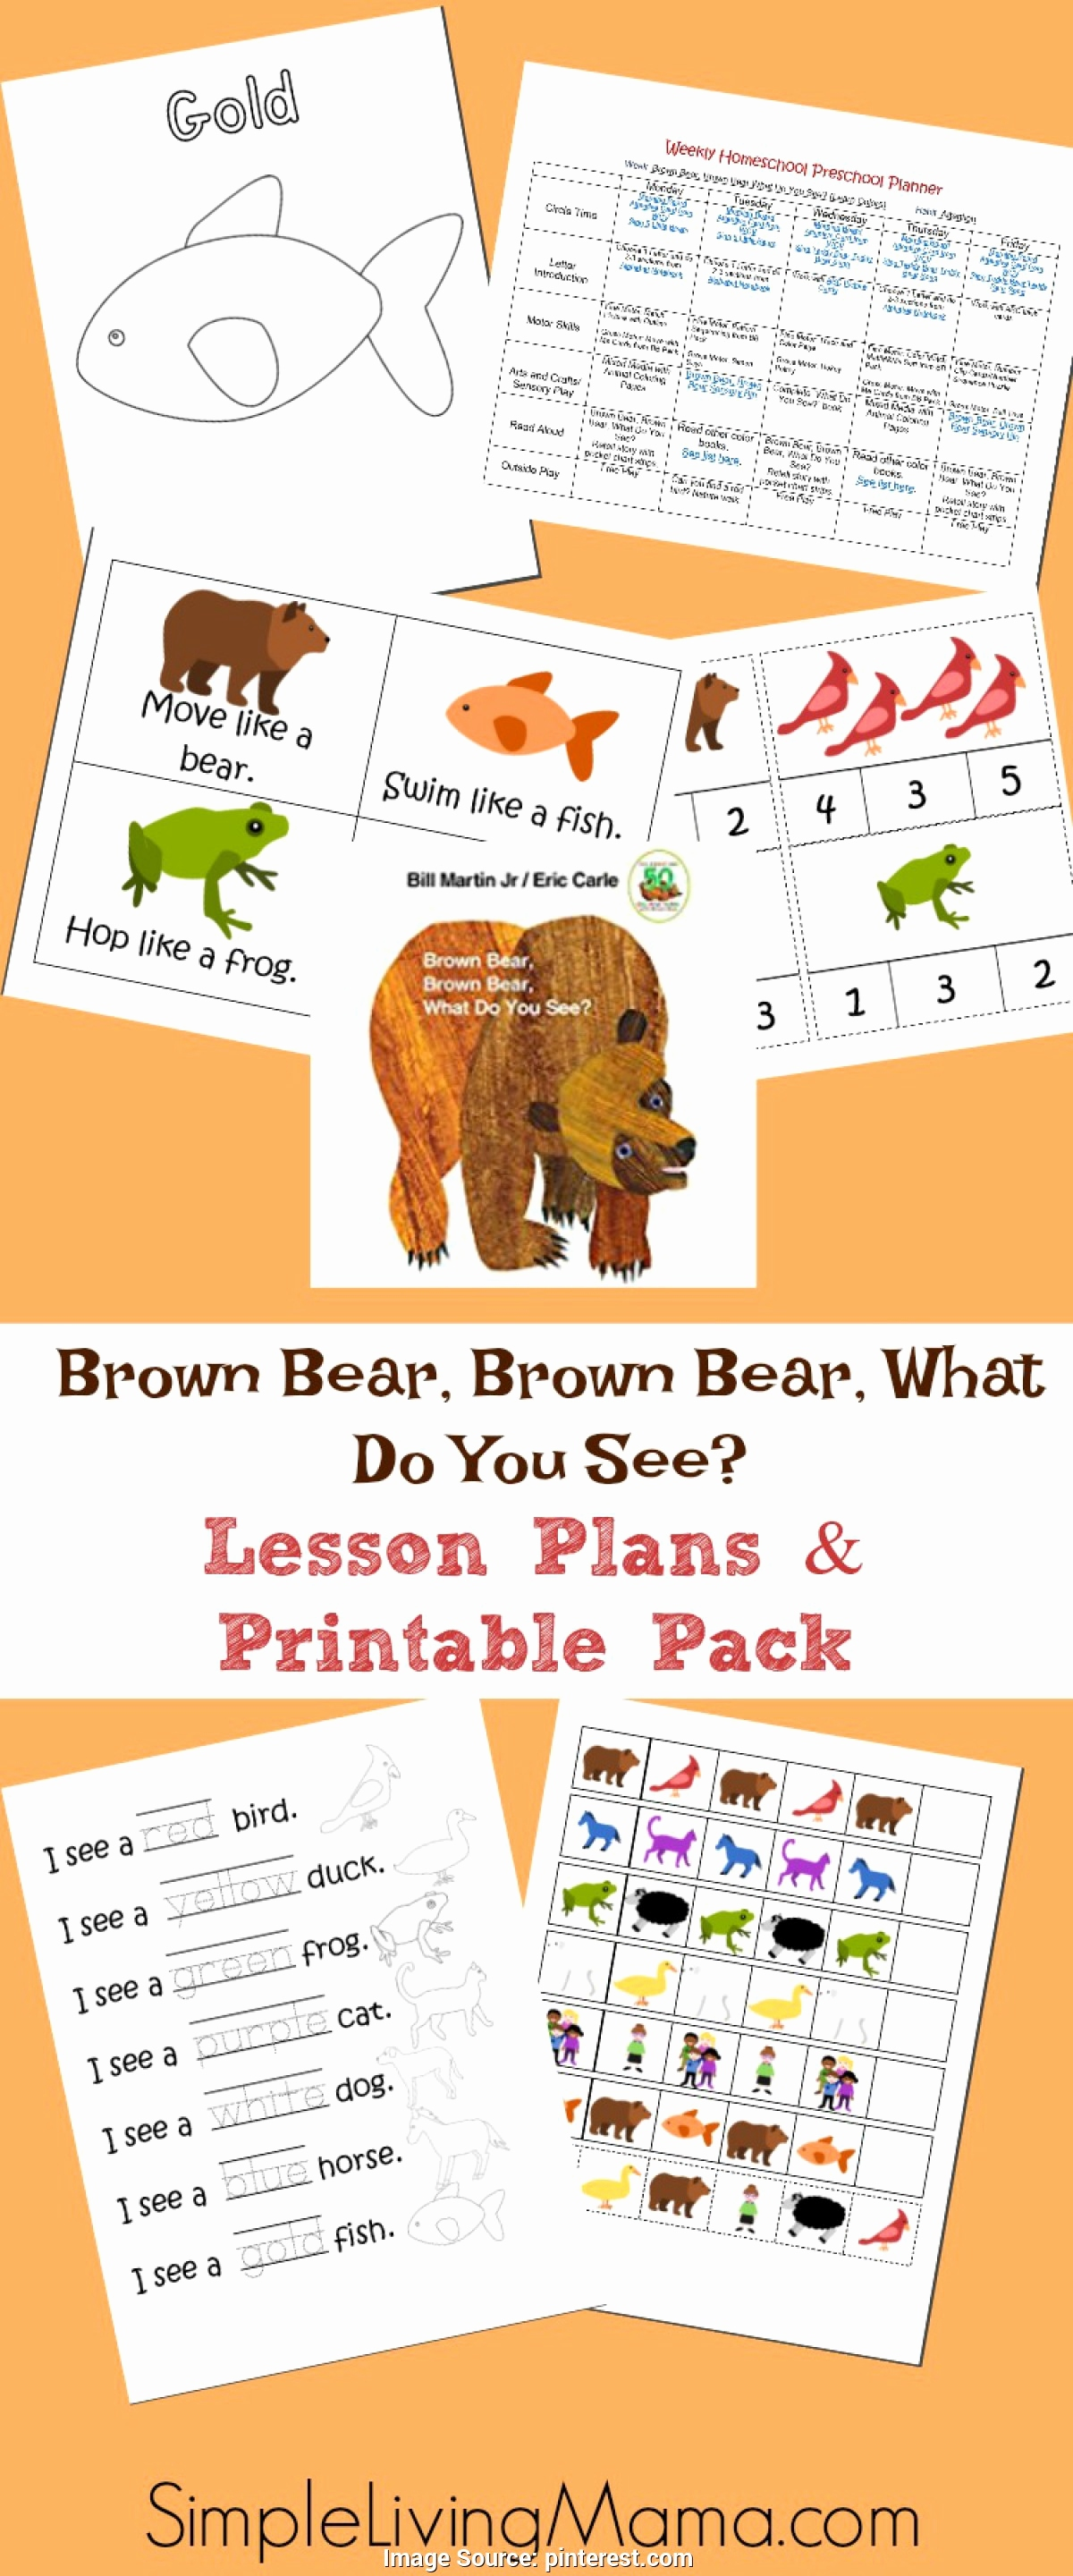 Ideen Portfolio Kindergarten Neu Interesting Sample Esl Lesson Plan My Teaching Portfolio May